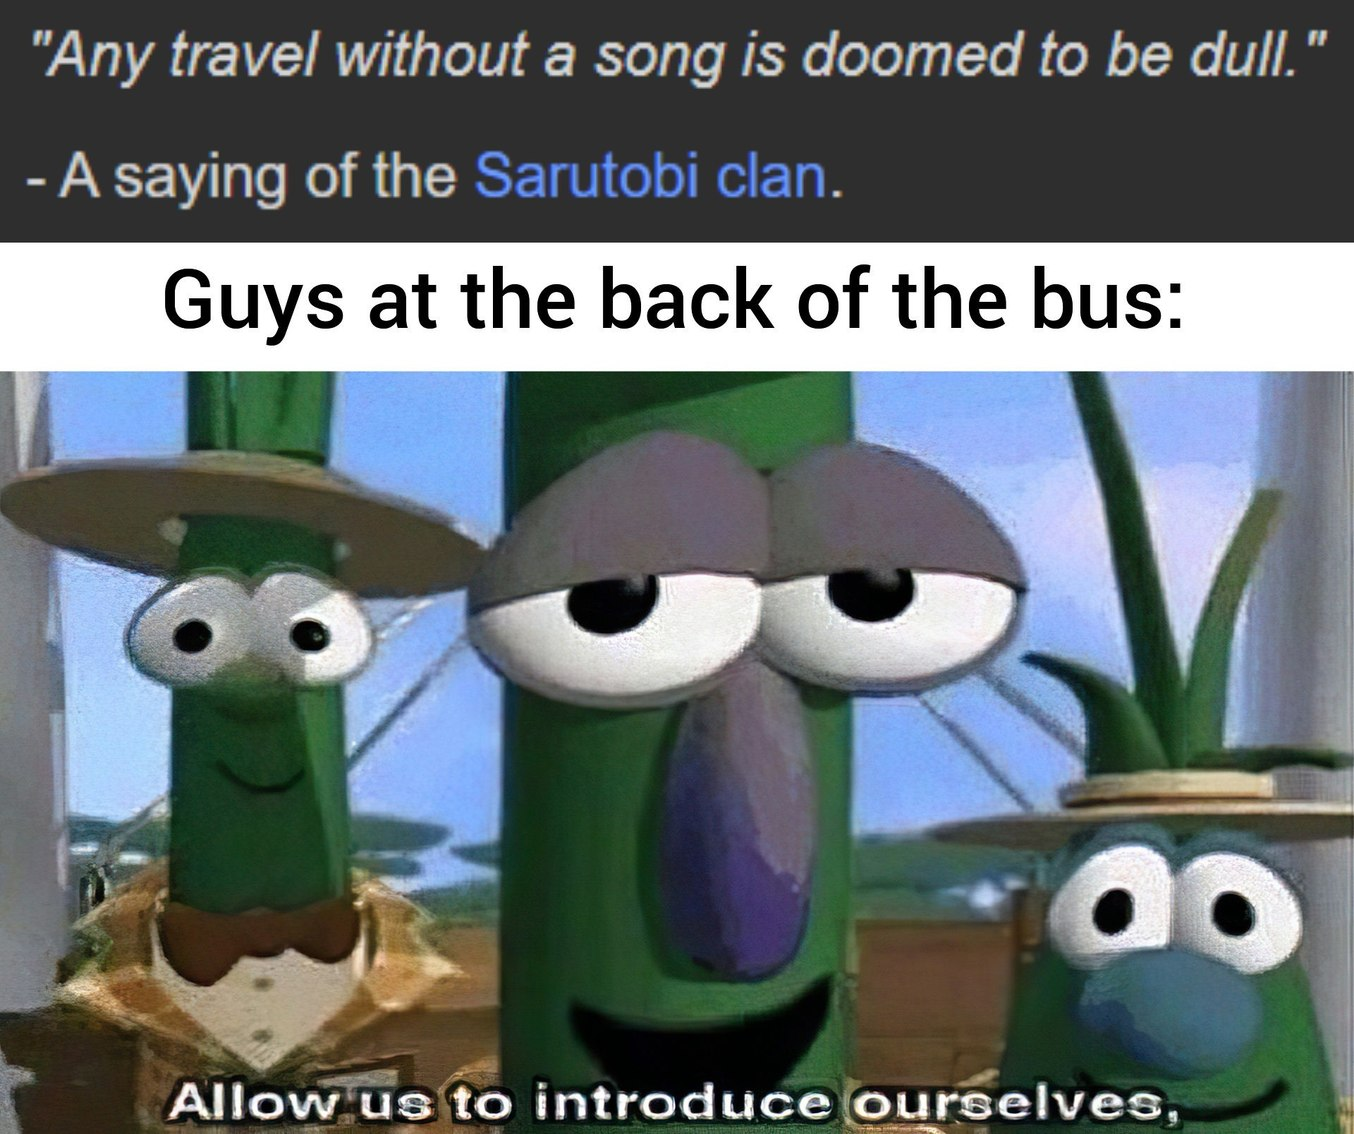 The best part of a trip is the music - meme